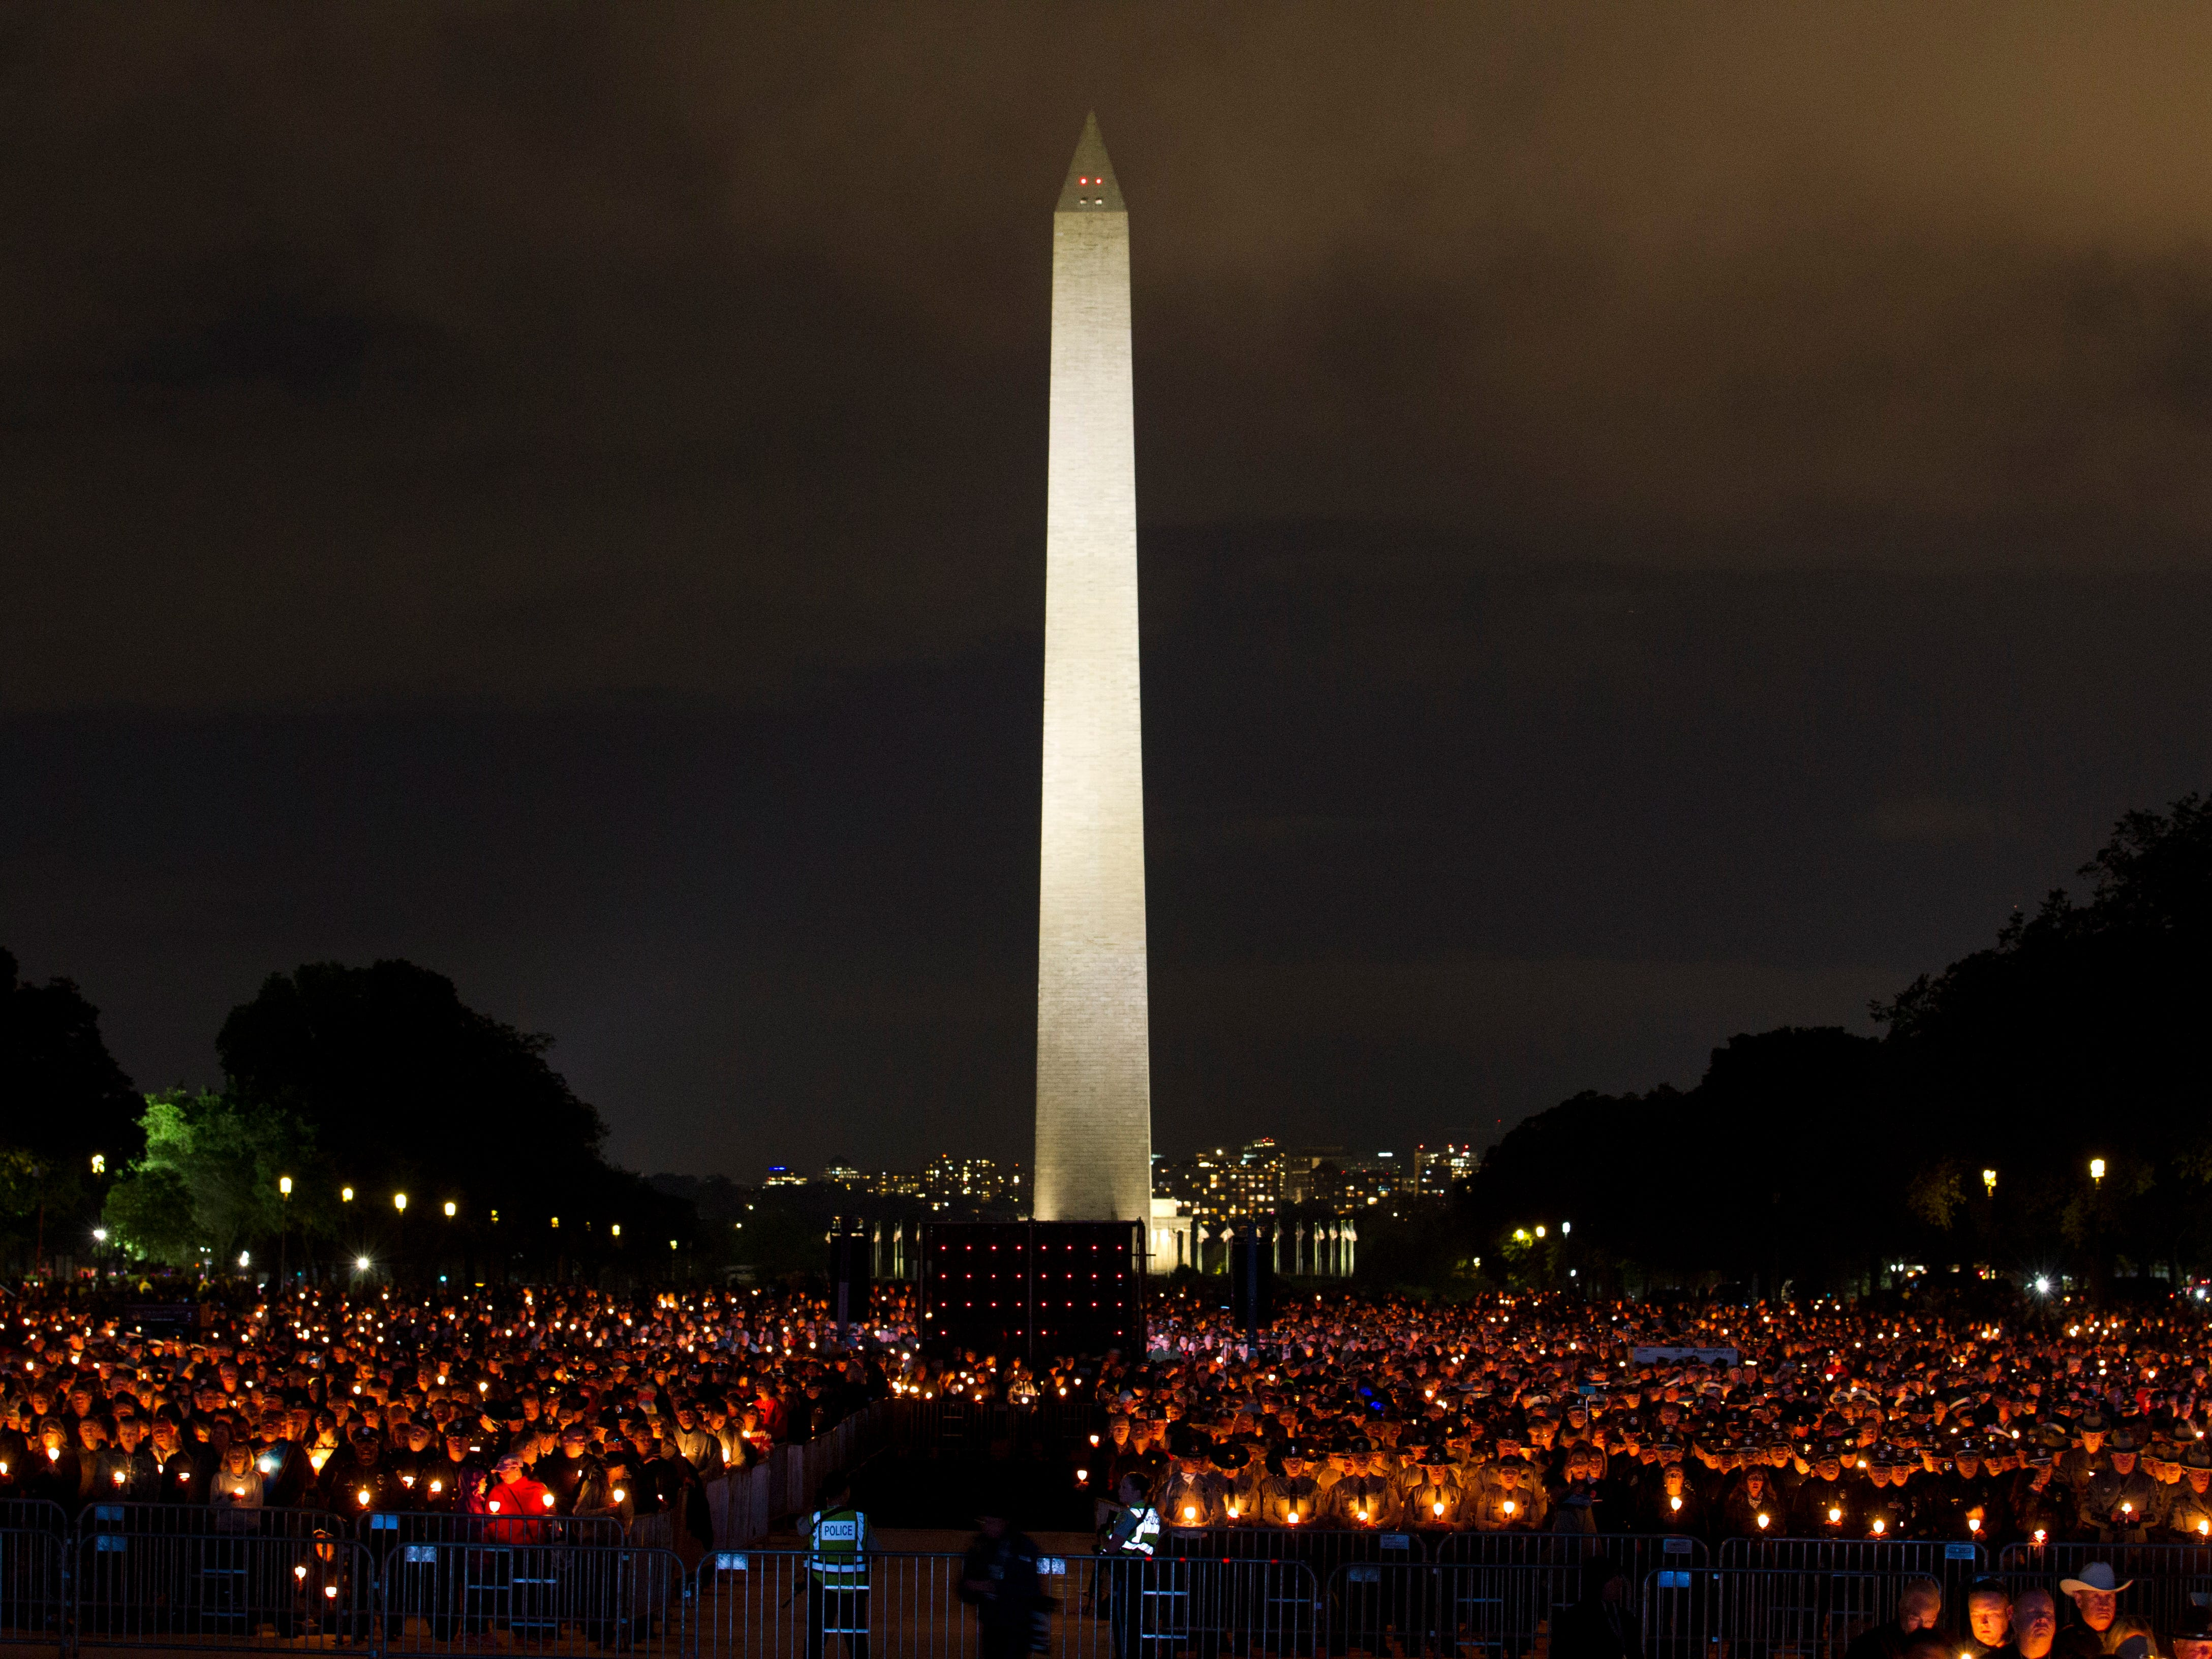 People hold candles, as the Washington Monument stands in the background, during the National Law Enforcement Officers Memorial Fund Annual Candlelight Vigil to commemorate new names added to the monument, in a ceremony at the National Mall in Washington, Monday, May 13, 2019.